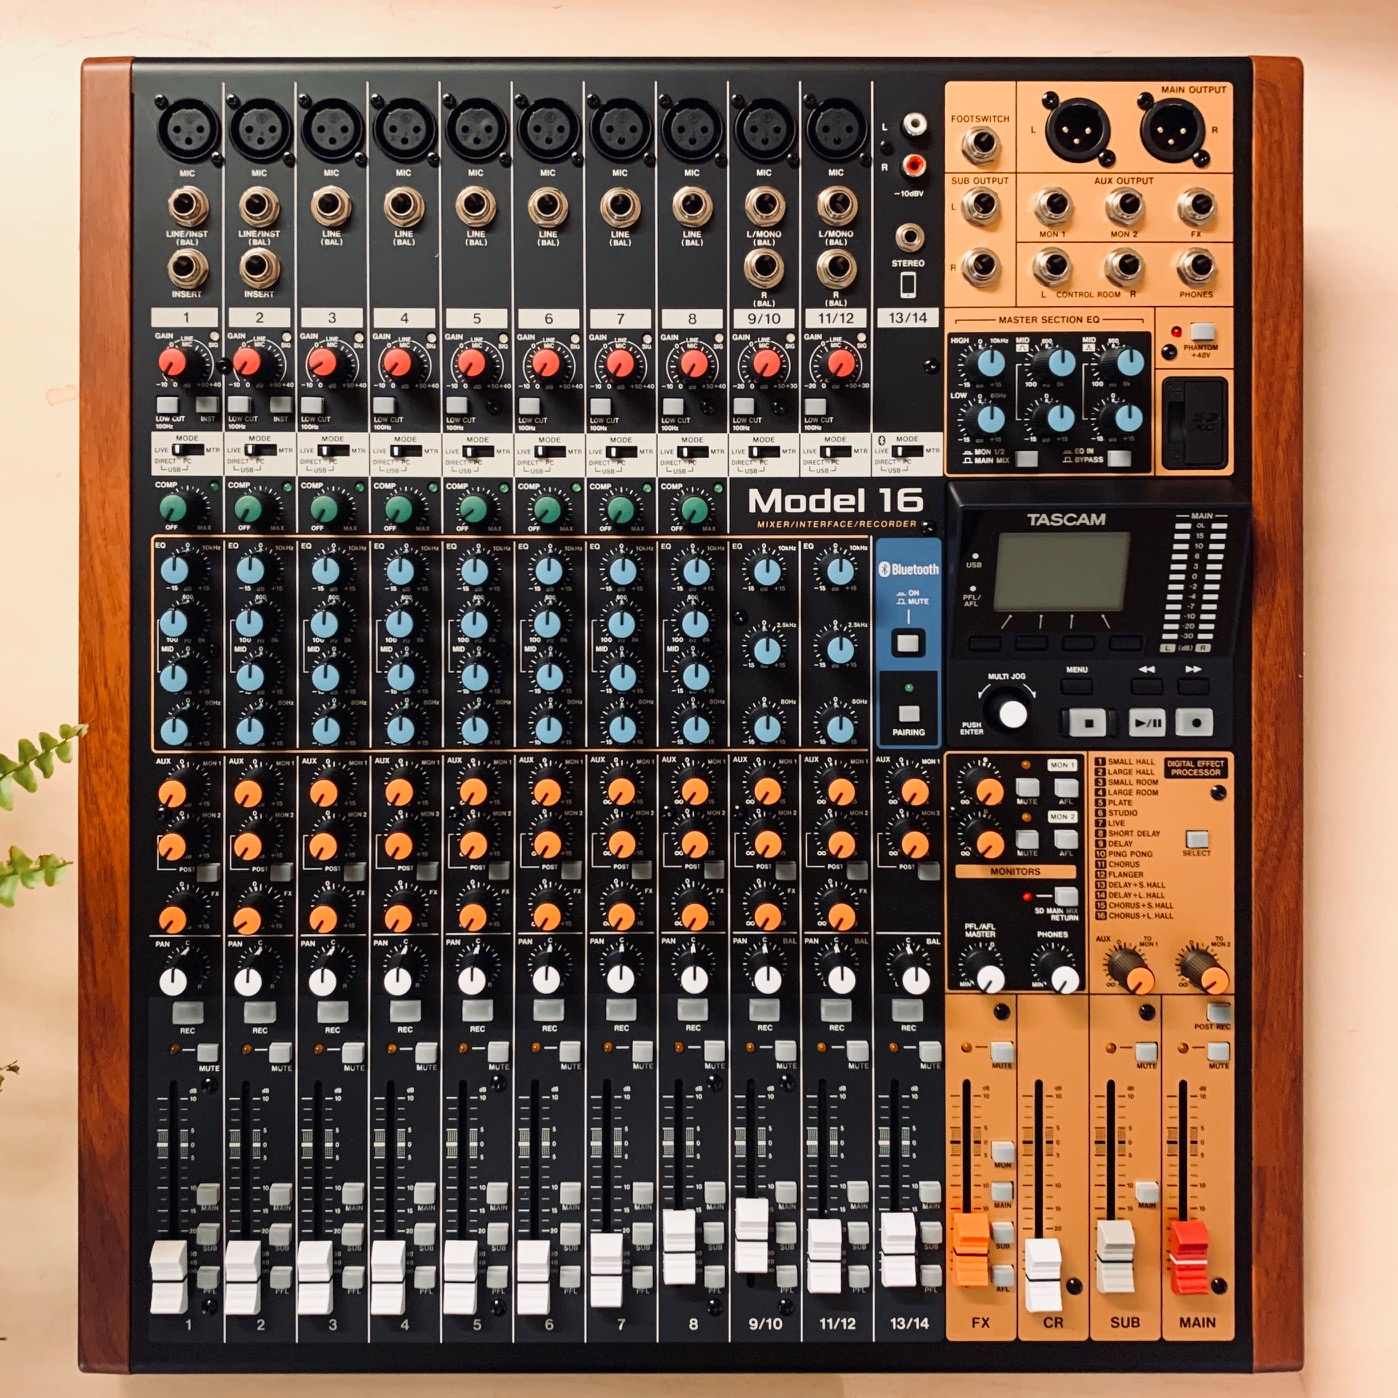 Tascam Model 24 24 Channel Multitrack Recorder and Analog Mixer C-STOCK